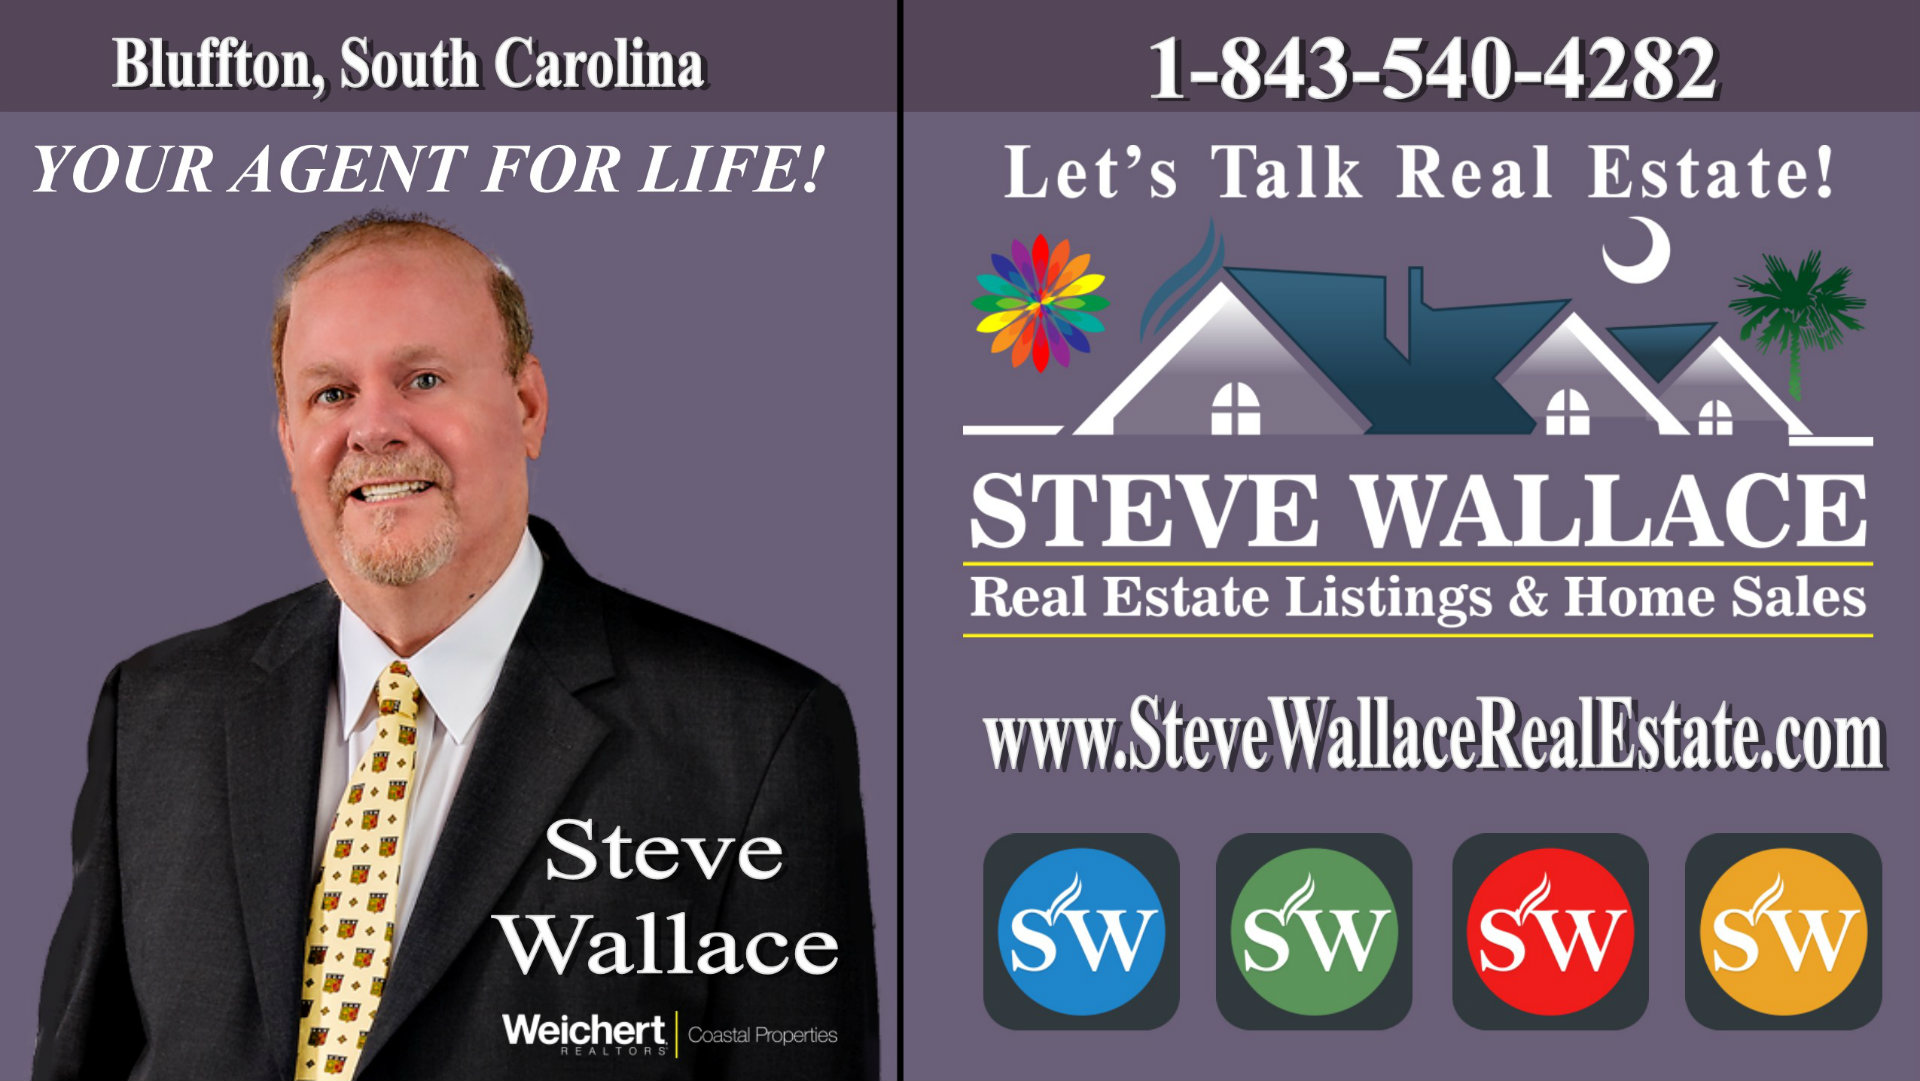 Real Estate Agent for Life, Steve Wallace, ABR, Realtor, Bluffton, SC